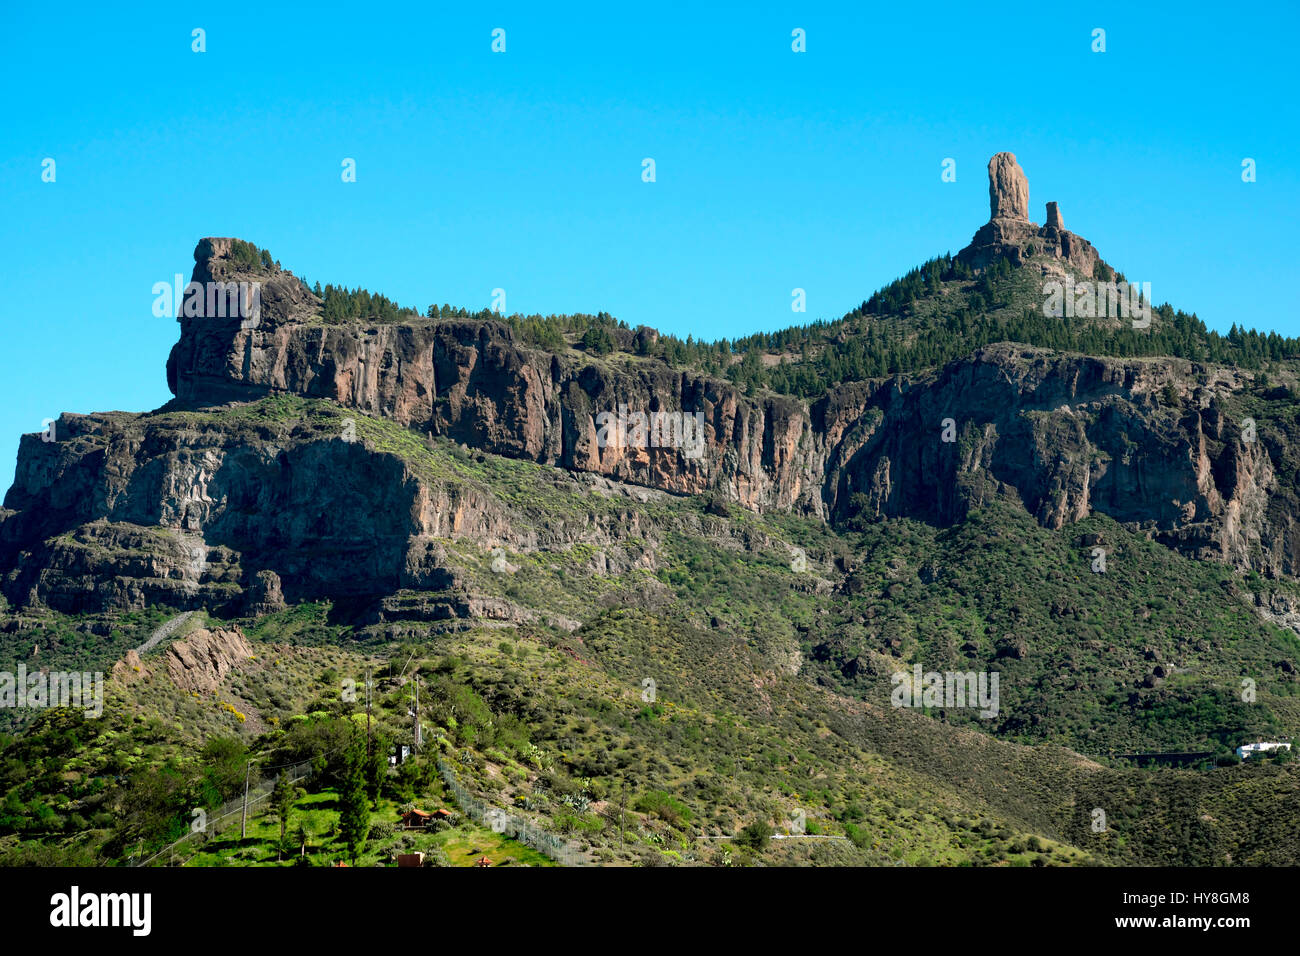 Outlook for Roque Nublo, Gran Canaria, Canary Islands, Spain - Stock Image